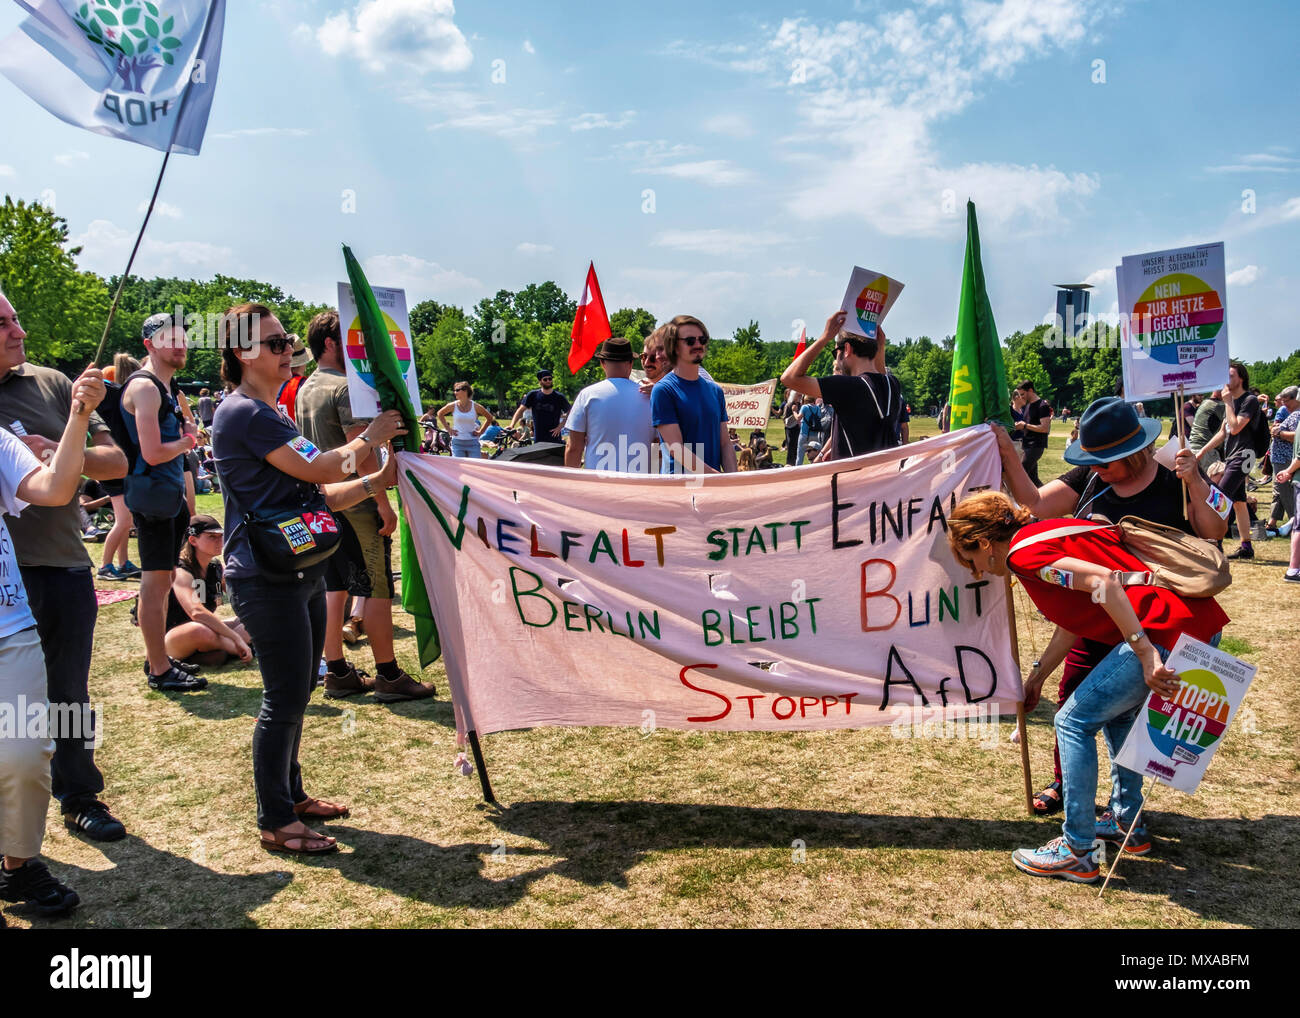 Berlin Mitte Anti AfD protesters. People with Banners challenge the anti-immigration right wingers - Stock Image